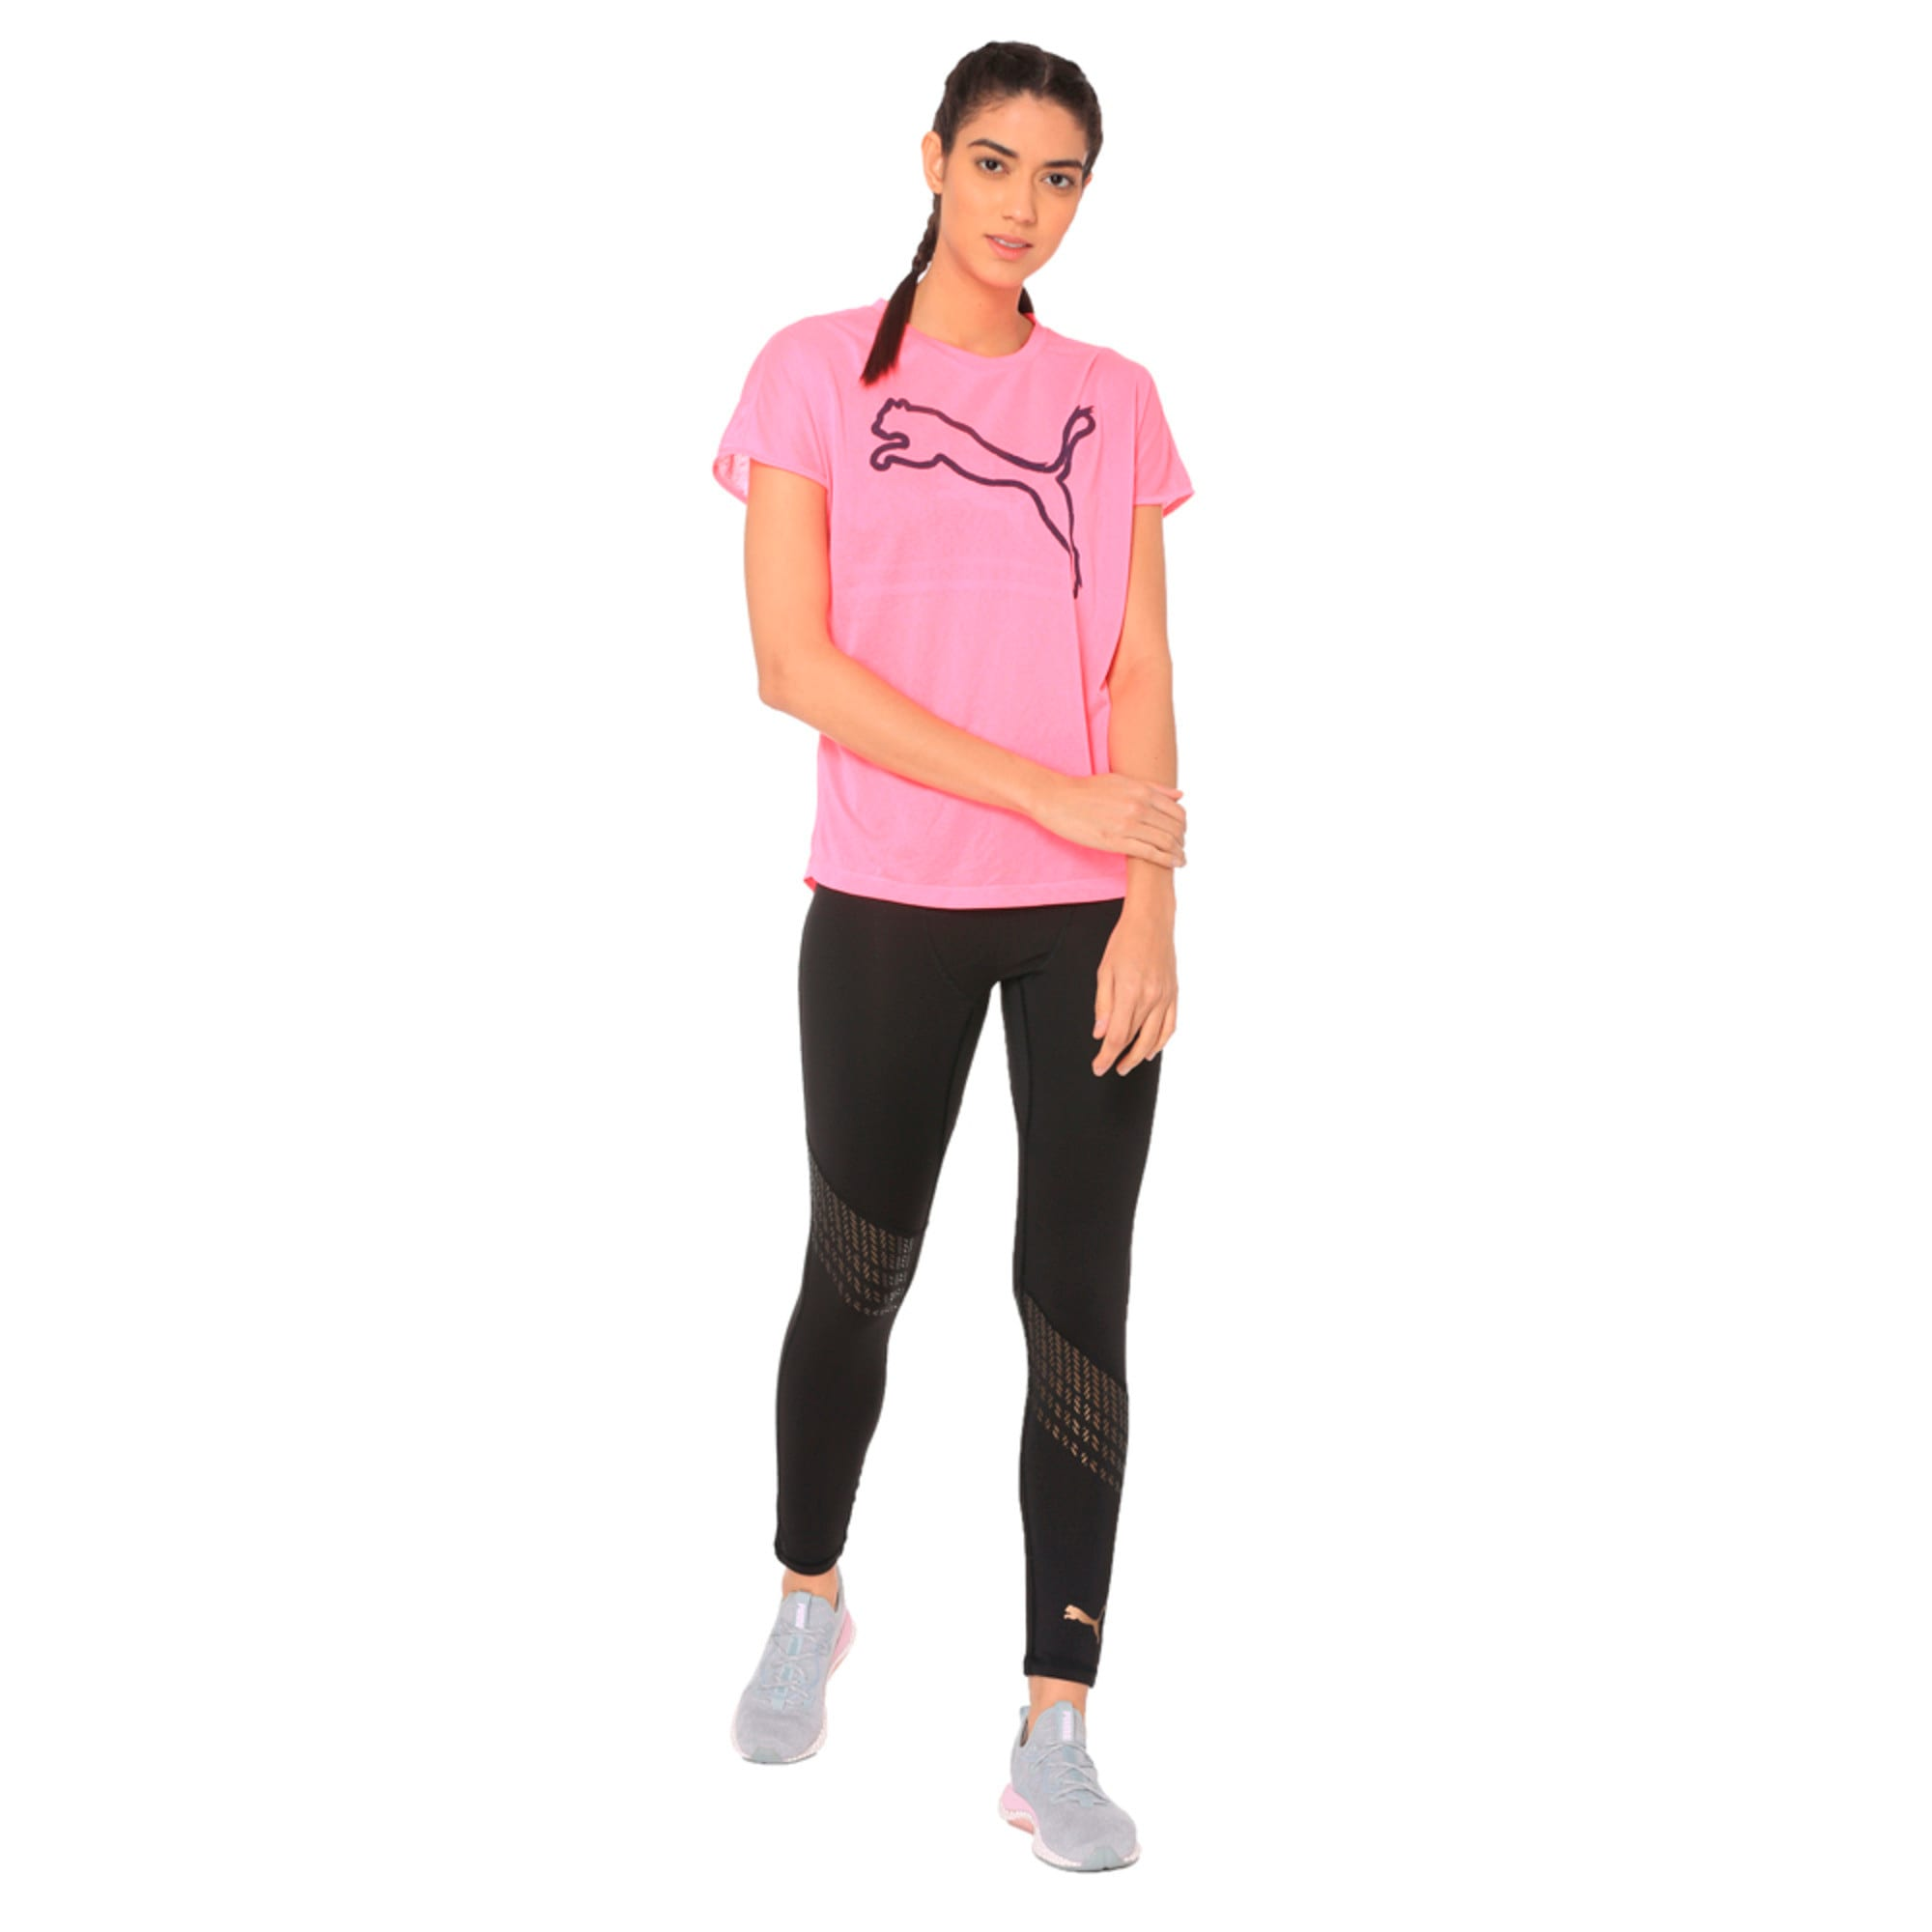 Thumbnail 3 of A.C.E. Crew Neck Women's T-Shirt, KNOCKOUT PINK, medium-IND